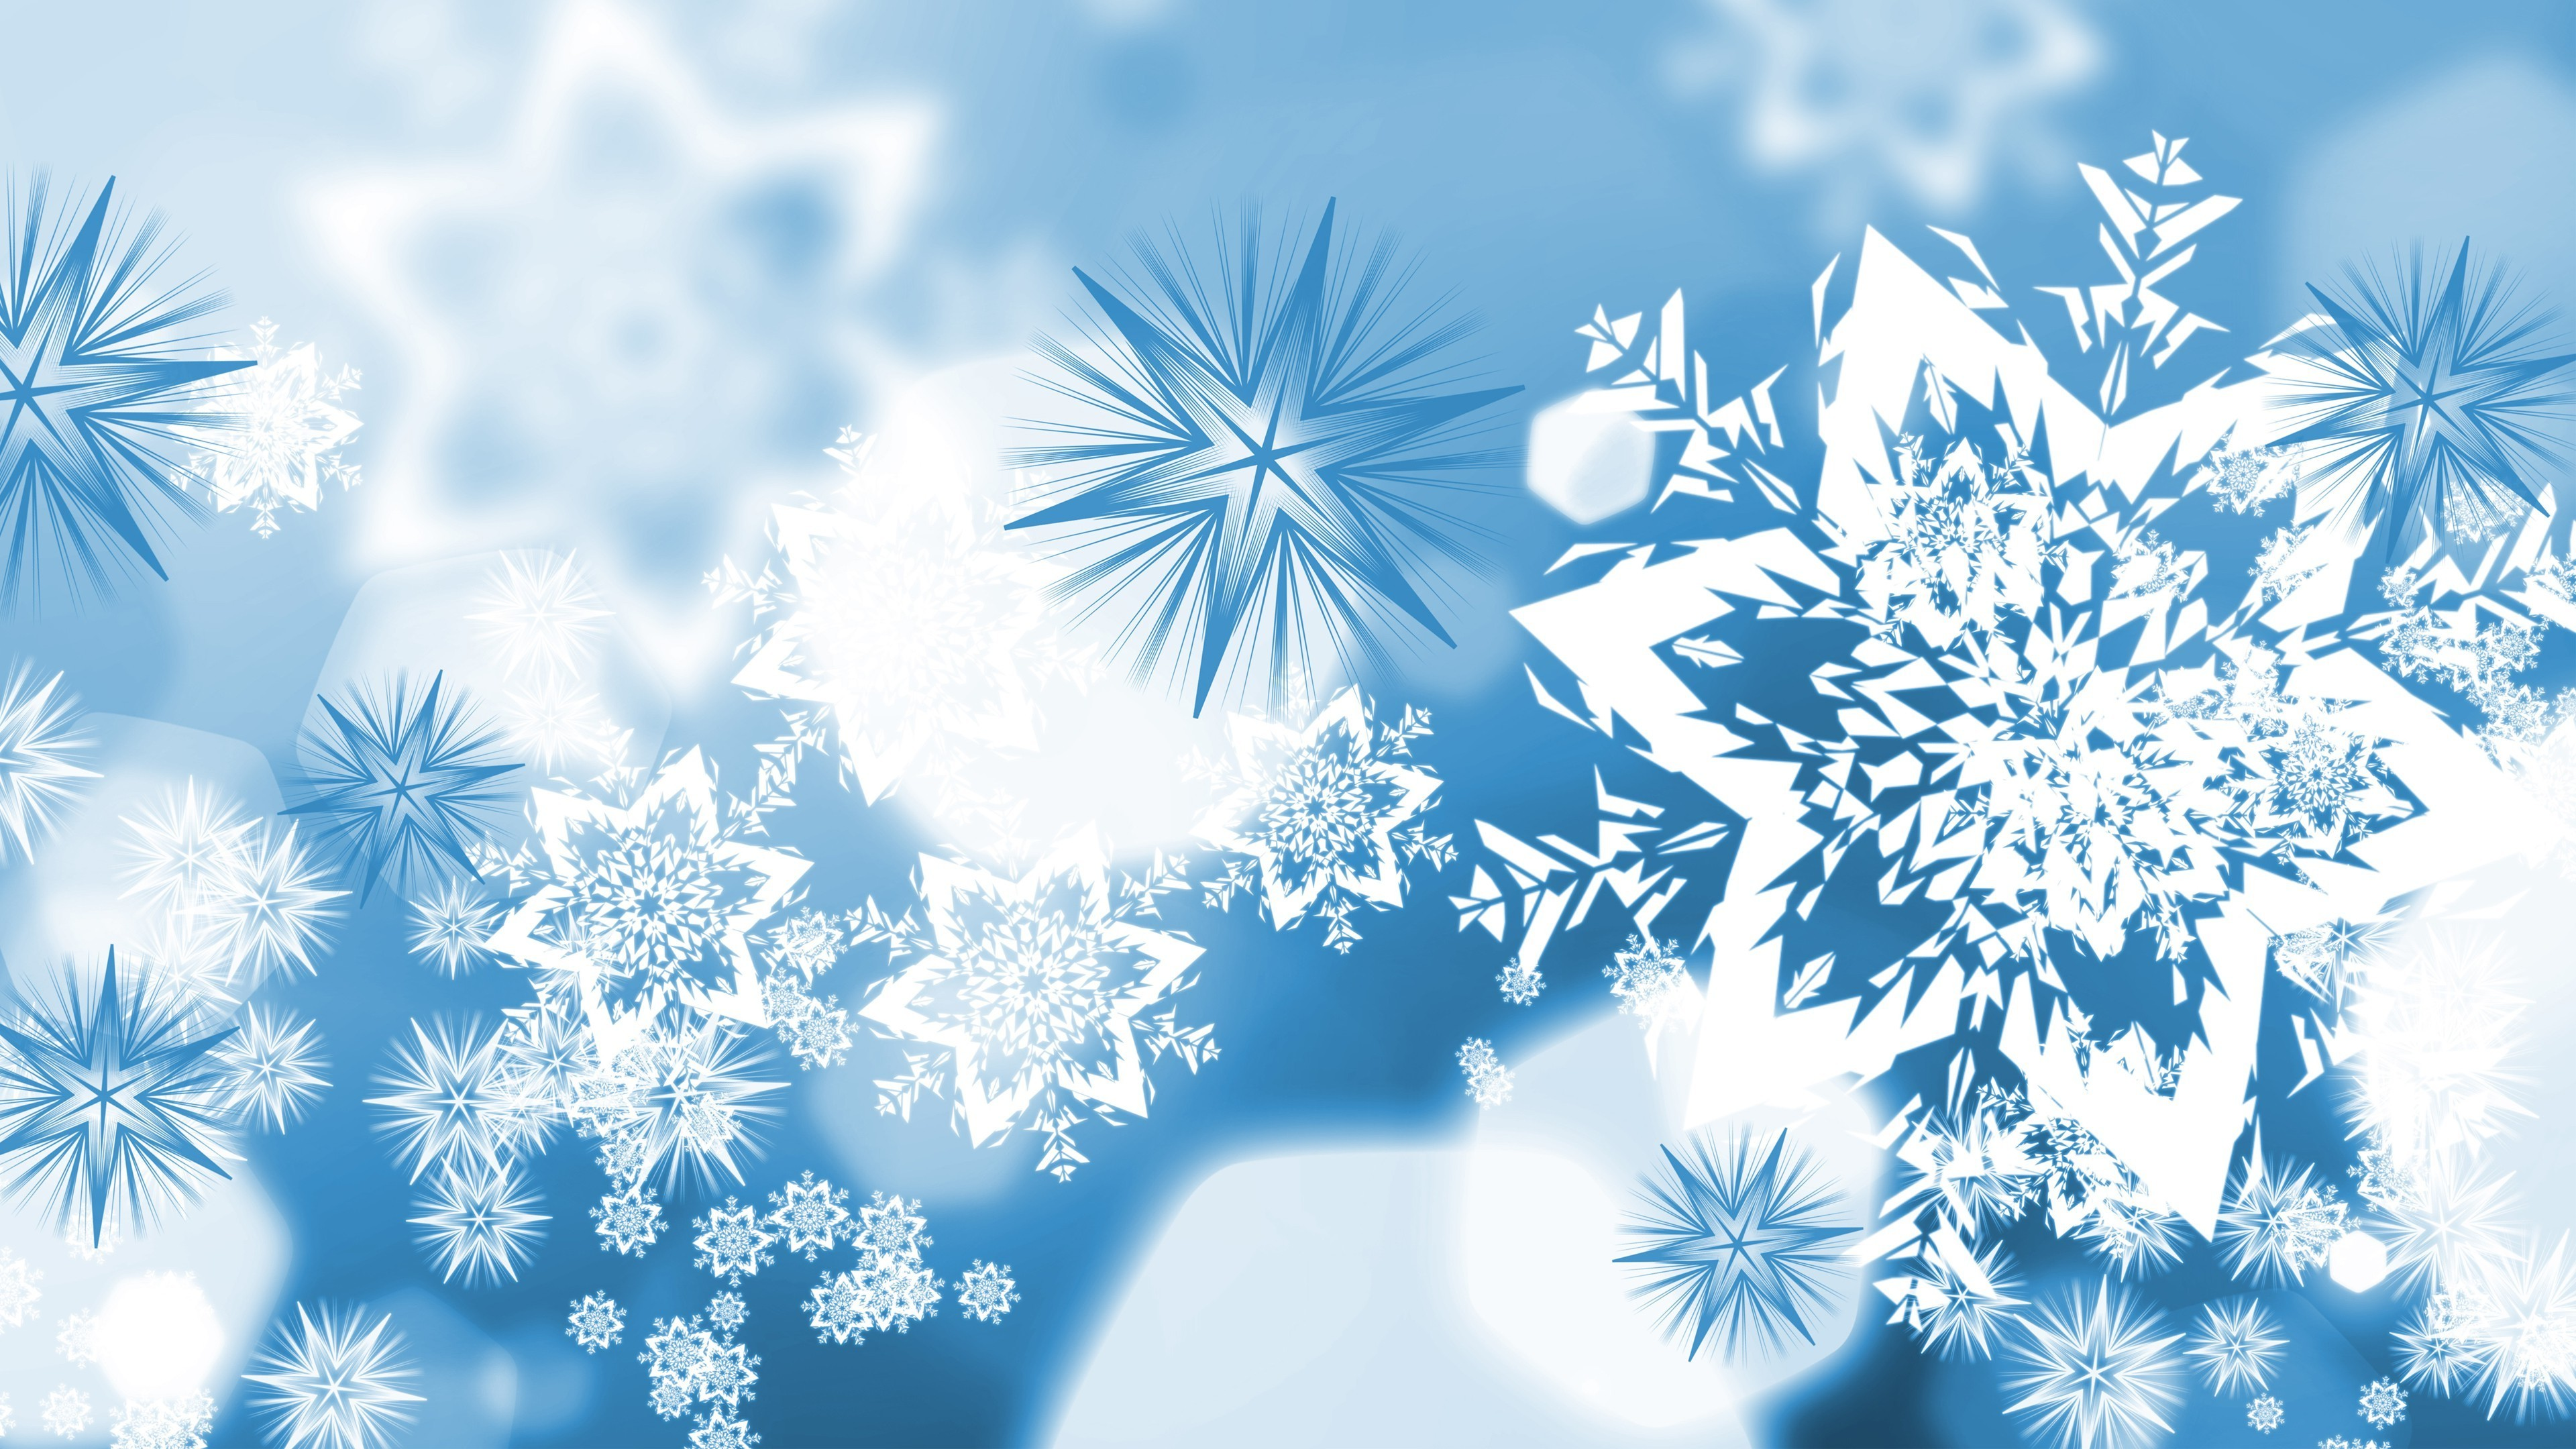 animated christmas wallpaper for iphone 6 plus